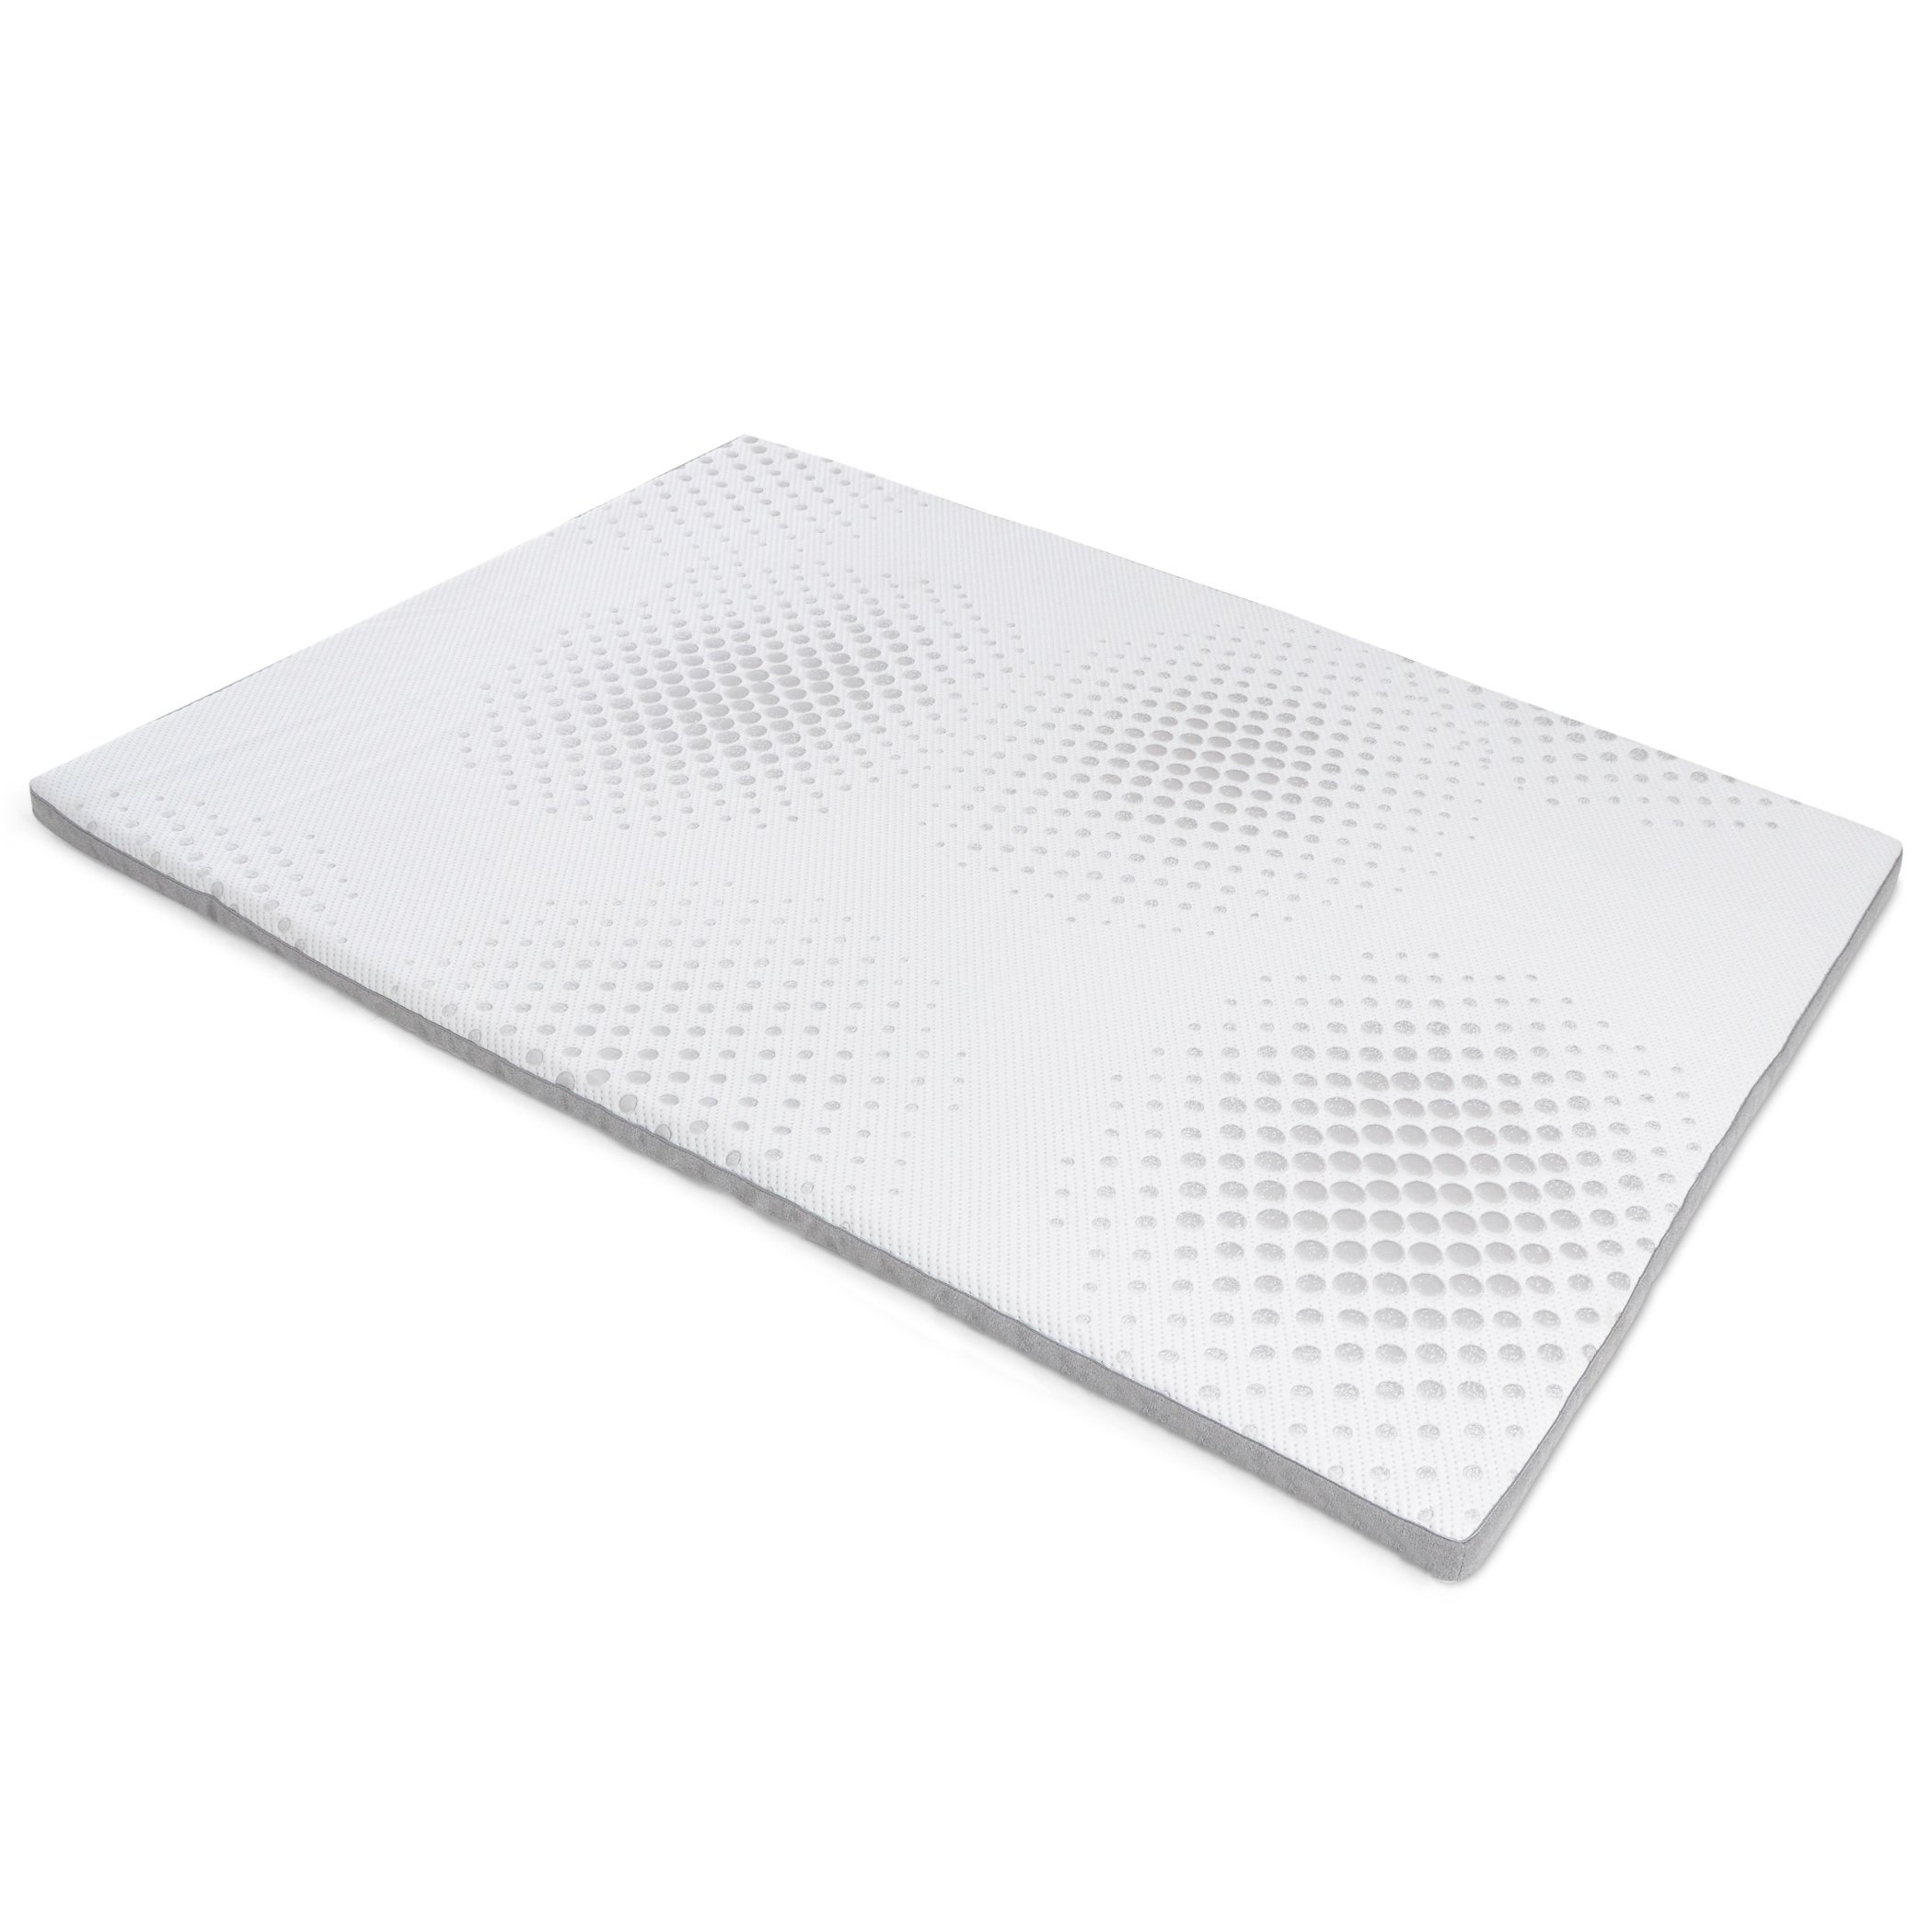 Milliard 2-Inch Gel Memory Foam Mattress Topper - Featuring a Washable and Removable Soft Bamboo Cover - Full - 73''x52''x2''